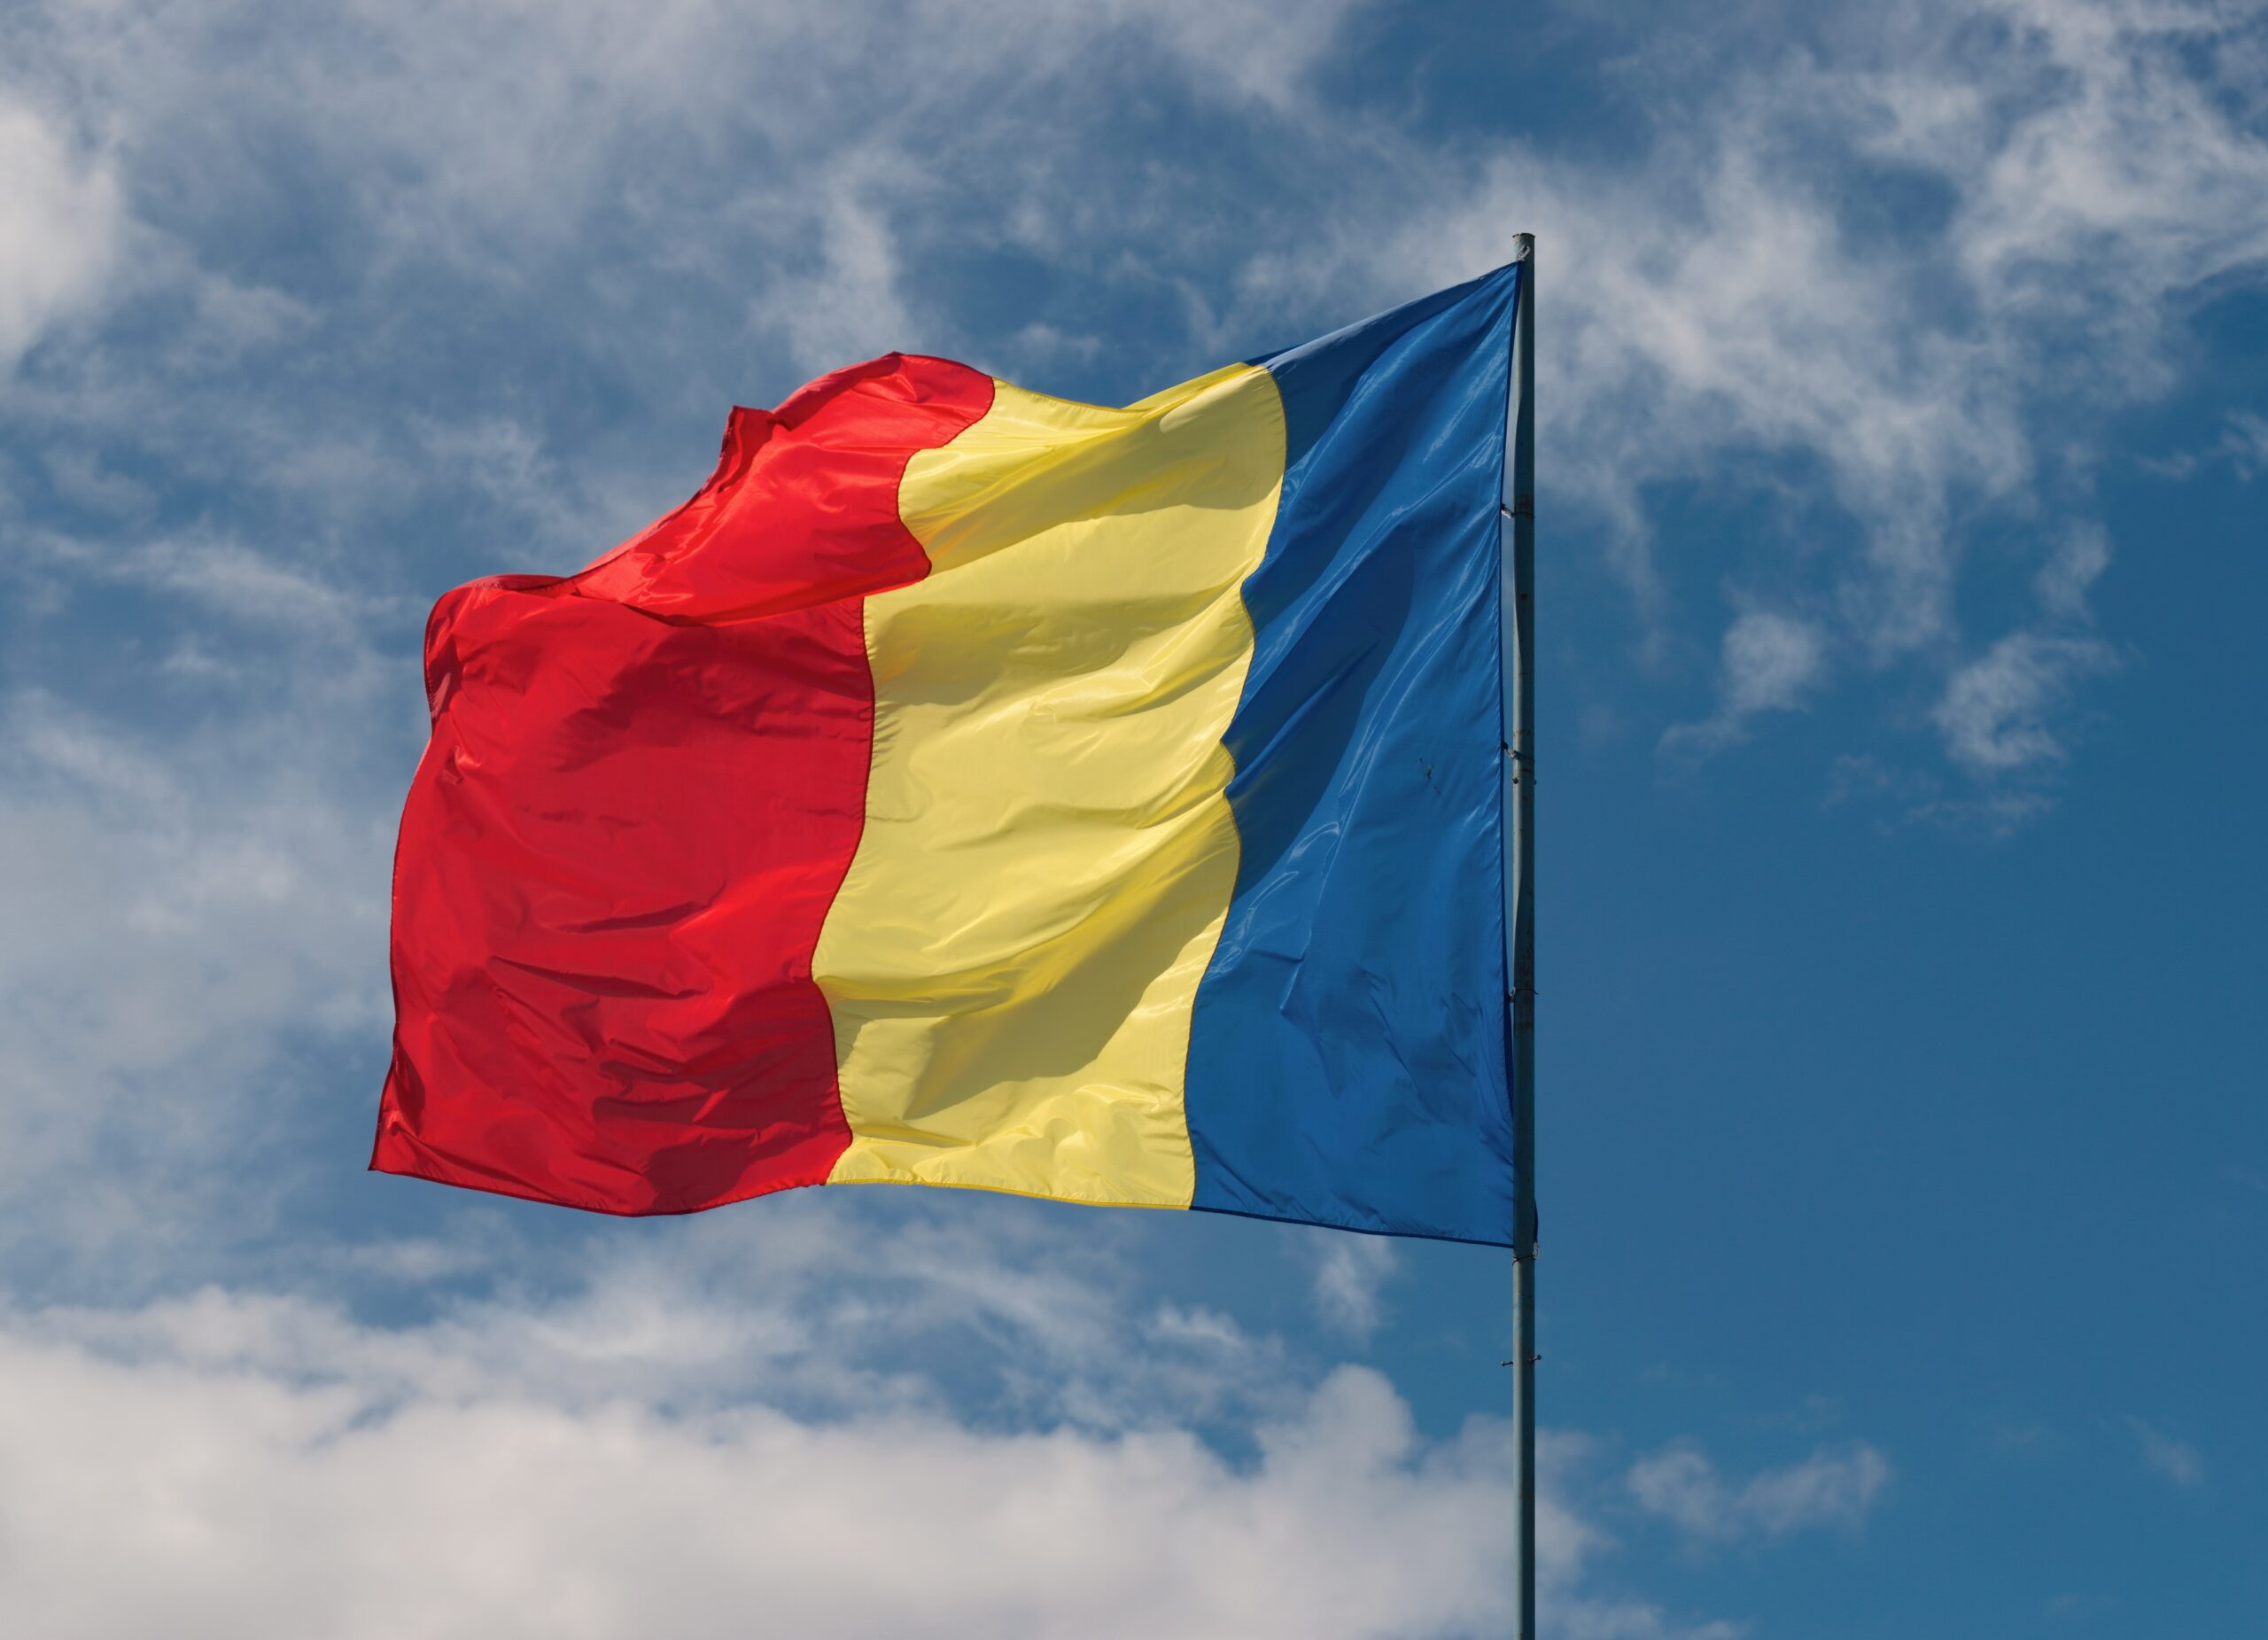 Representing the unrepresented: Romania's Parliamentary elections can be a representational breakthrough for its diaspora